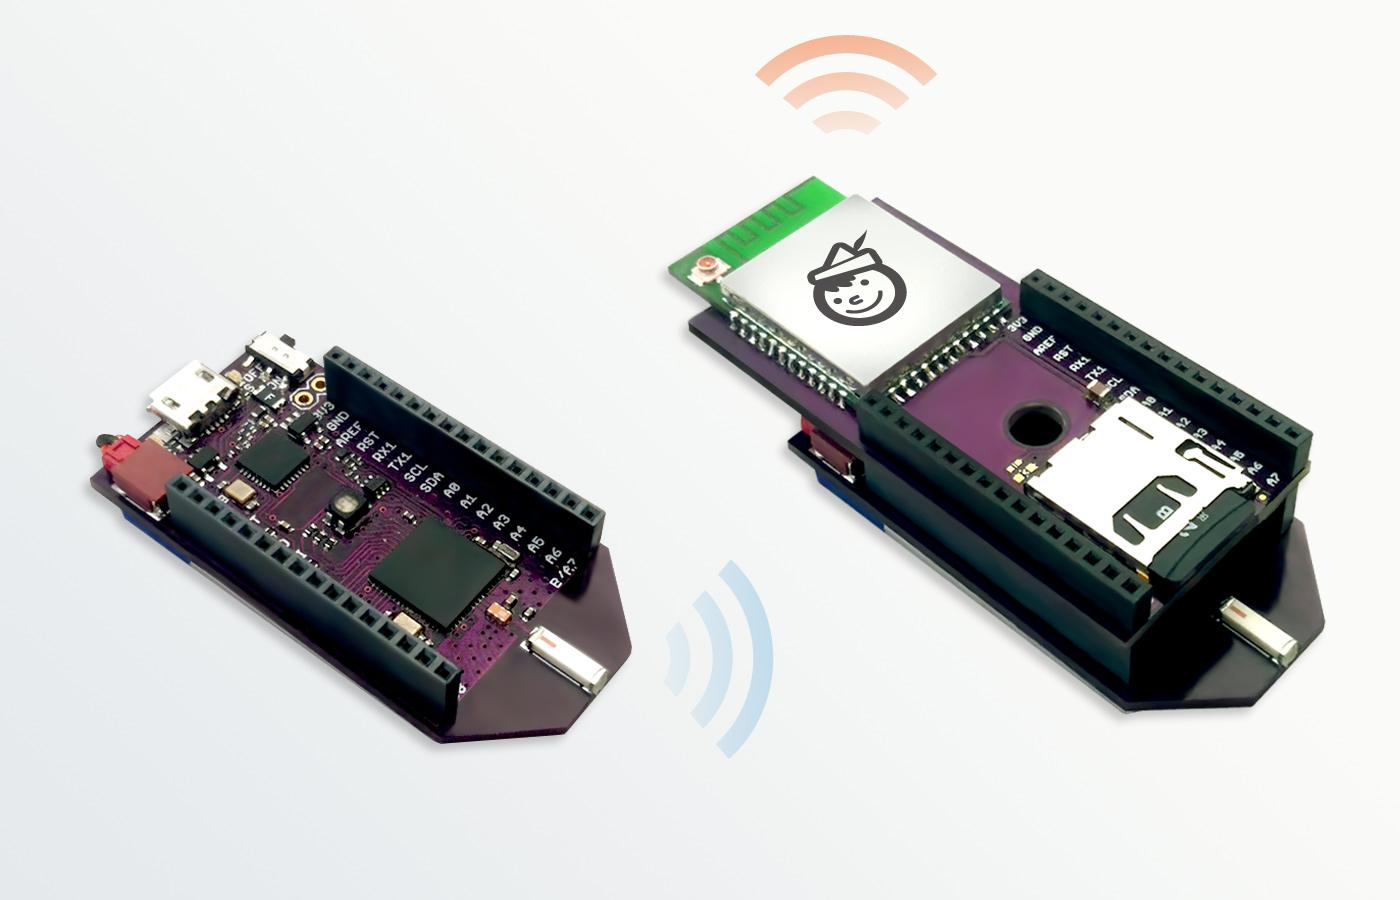 The Pinoccio microcontroller has an optional Wi-Fi shield available for internet connection